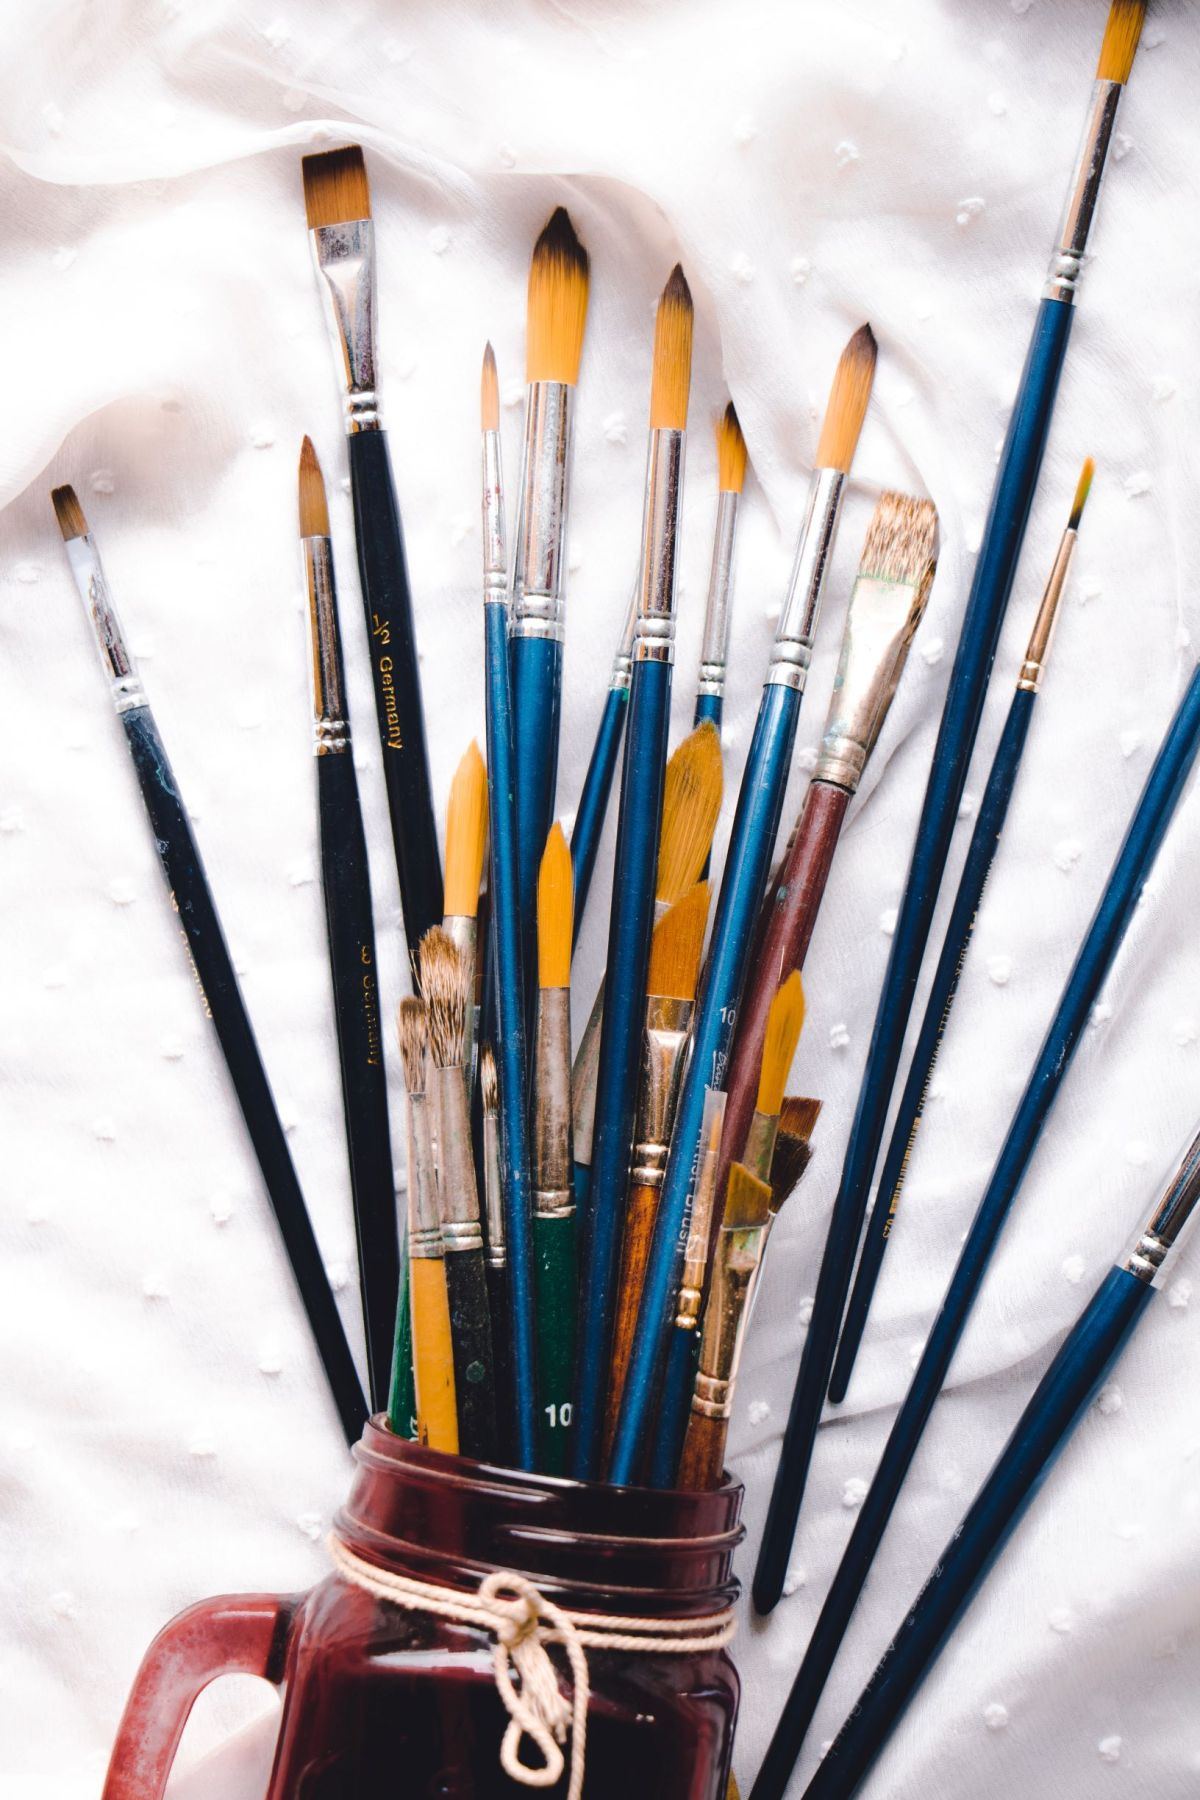 brushes kasturi-roy-1419785-unsplash